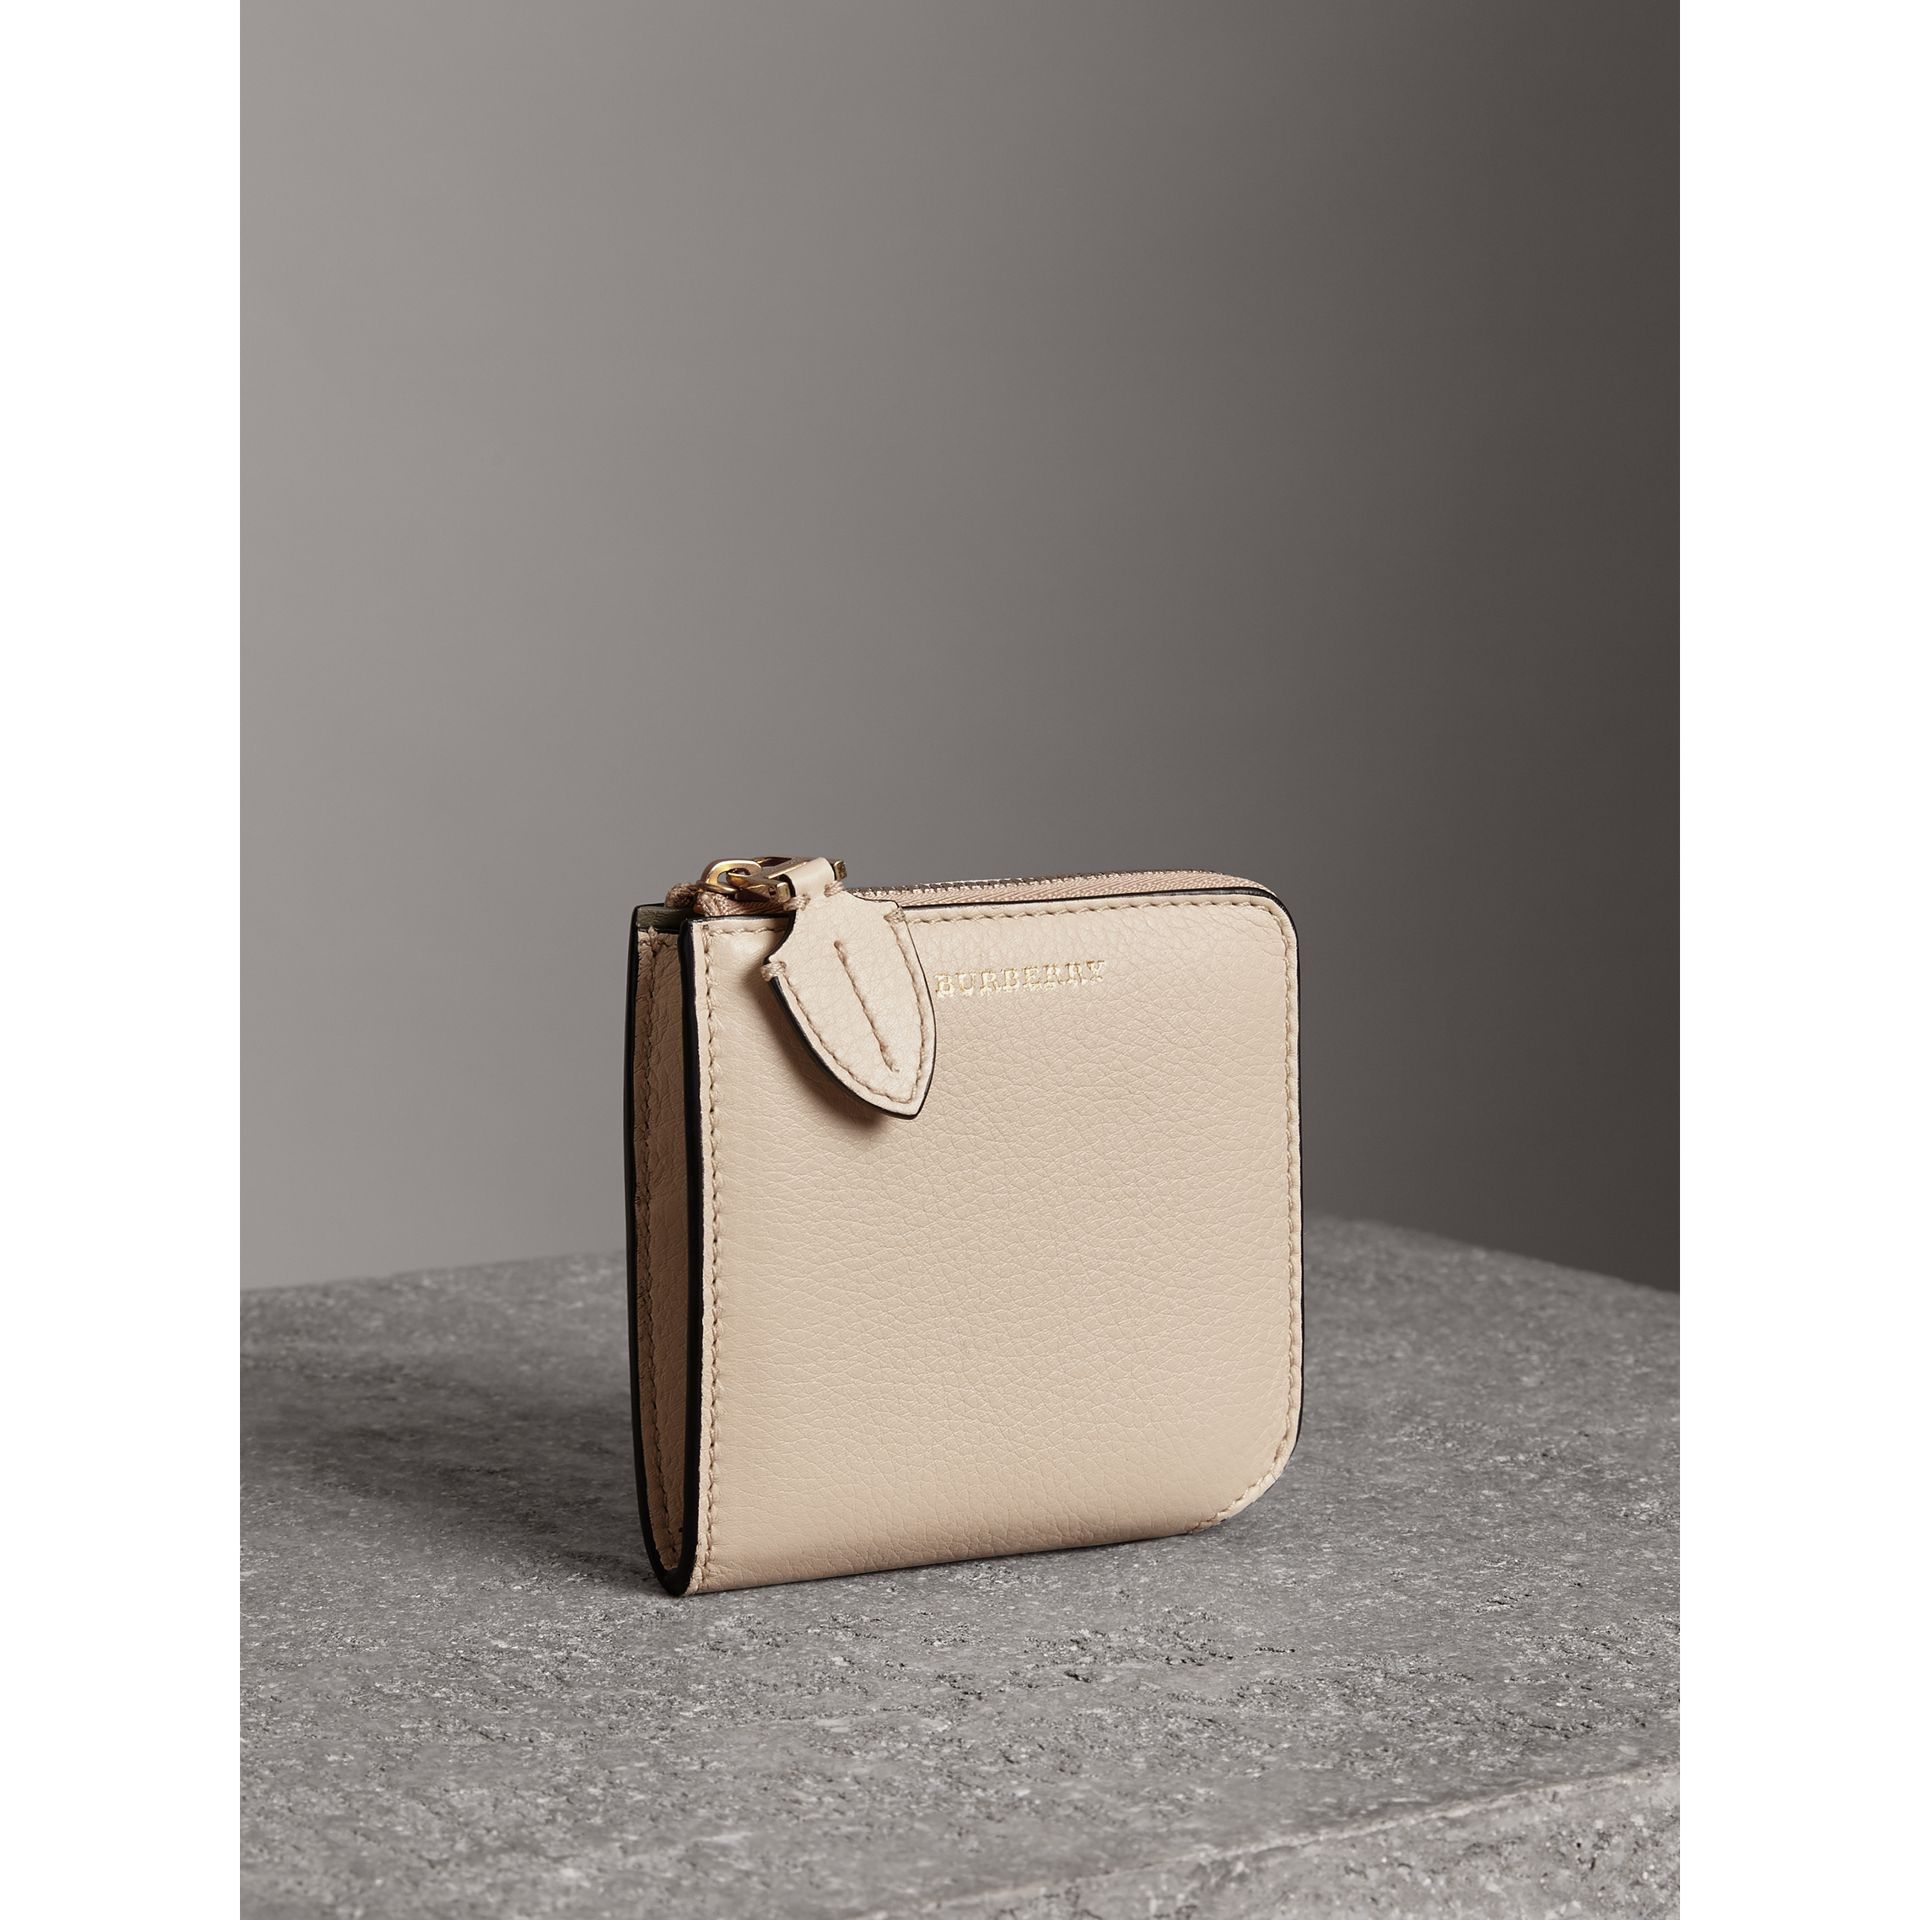 Grainy Leather Square Ziparound Wallet in Limestone - Women | Burberry Hong Kong - gallery image 4